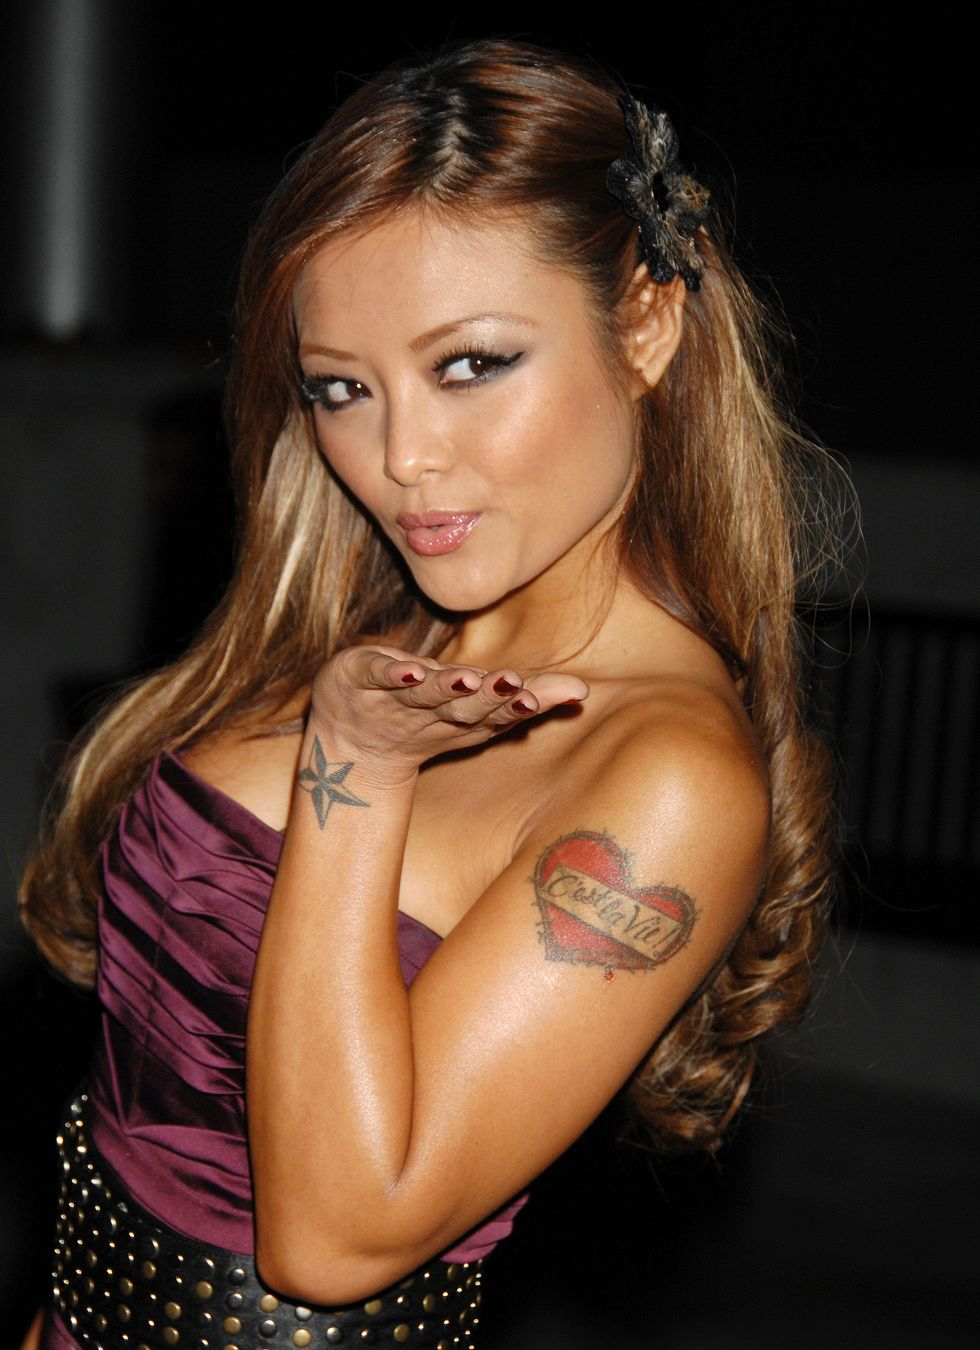 tila-tequila-the-maxim-magazine-extreme-sports-party-in-hollywood-01